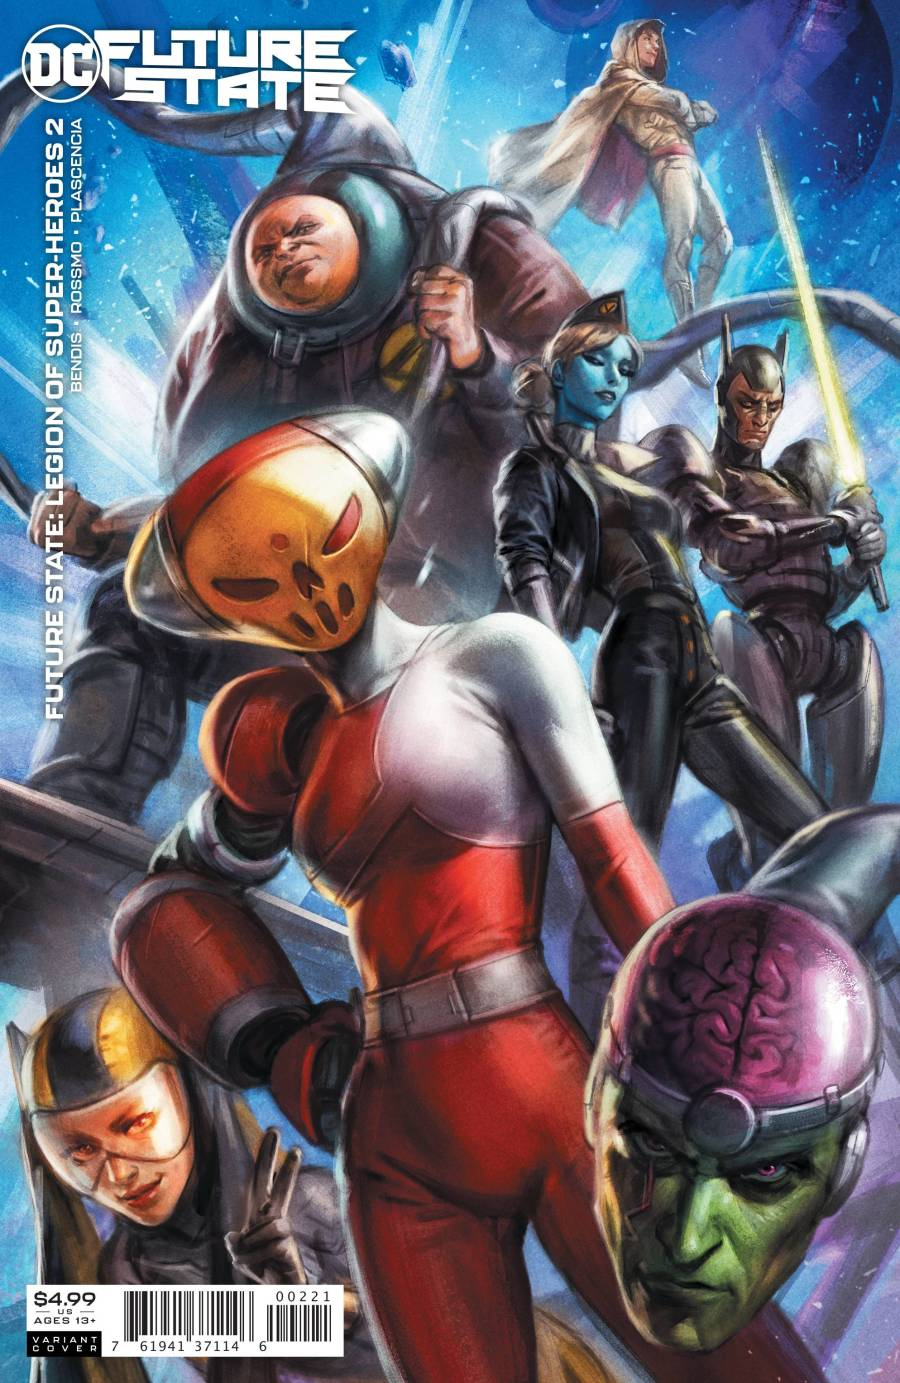 Future State: Legion Of Super Heroes #2 Review | The Aspiring Kryptonian